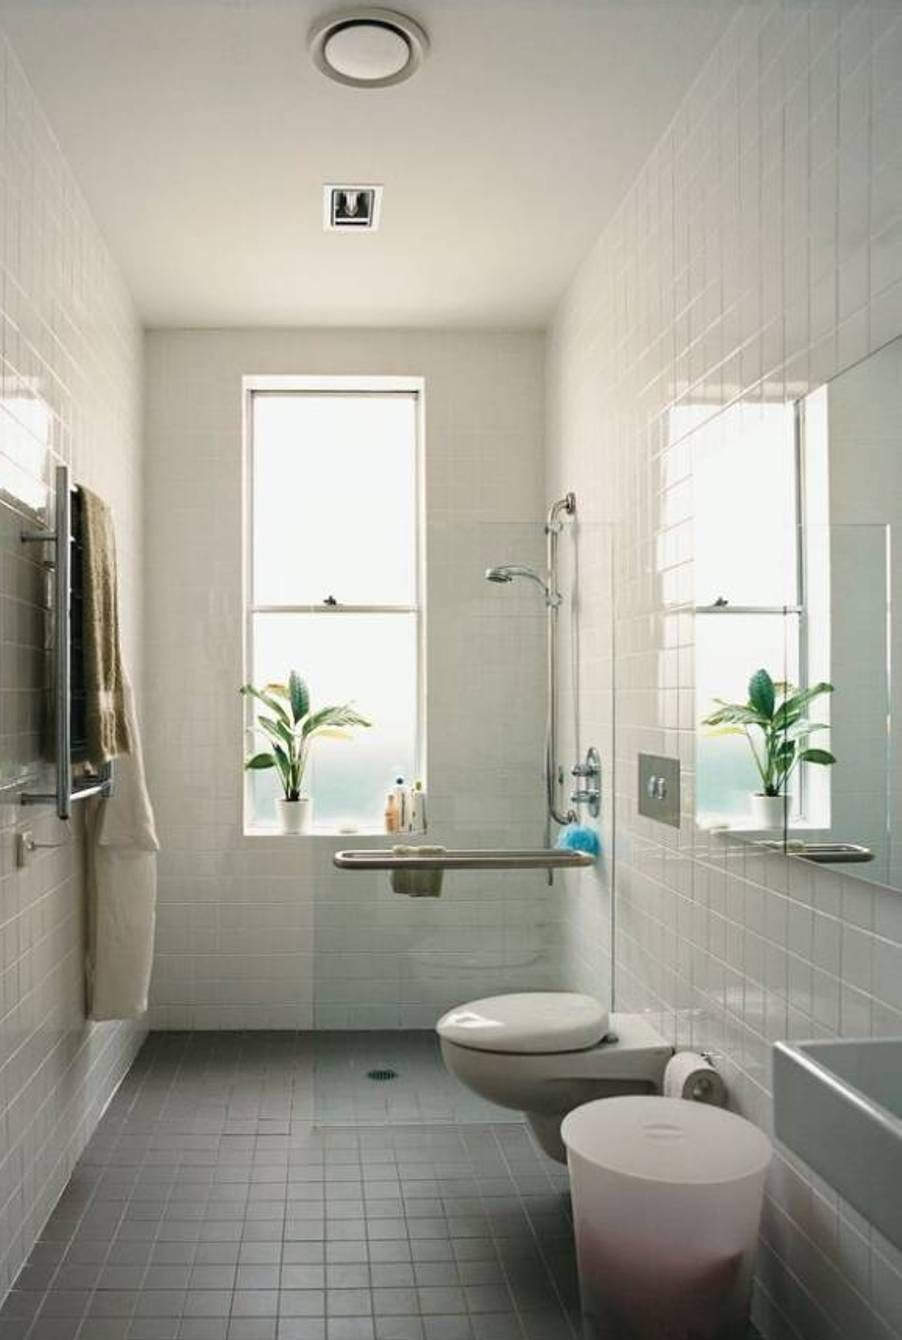 Narrow Bathroom Window With Small Toilet And Stainless Steel Towel Bar Also White Bathroom Tile Jpg 902 1 Tiny Bathrooms Small Narrow Bathroom Narrow Bathroom